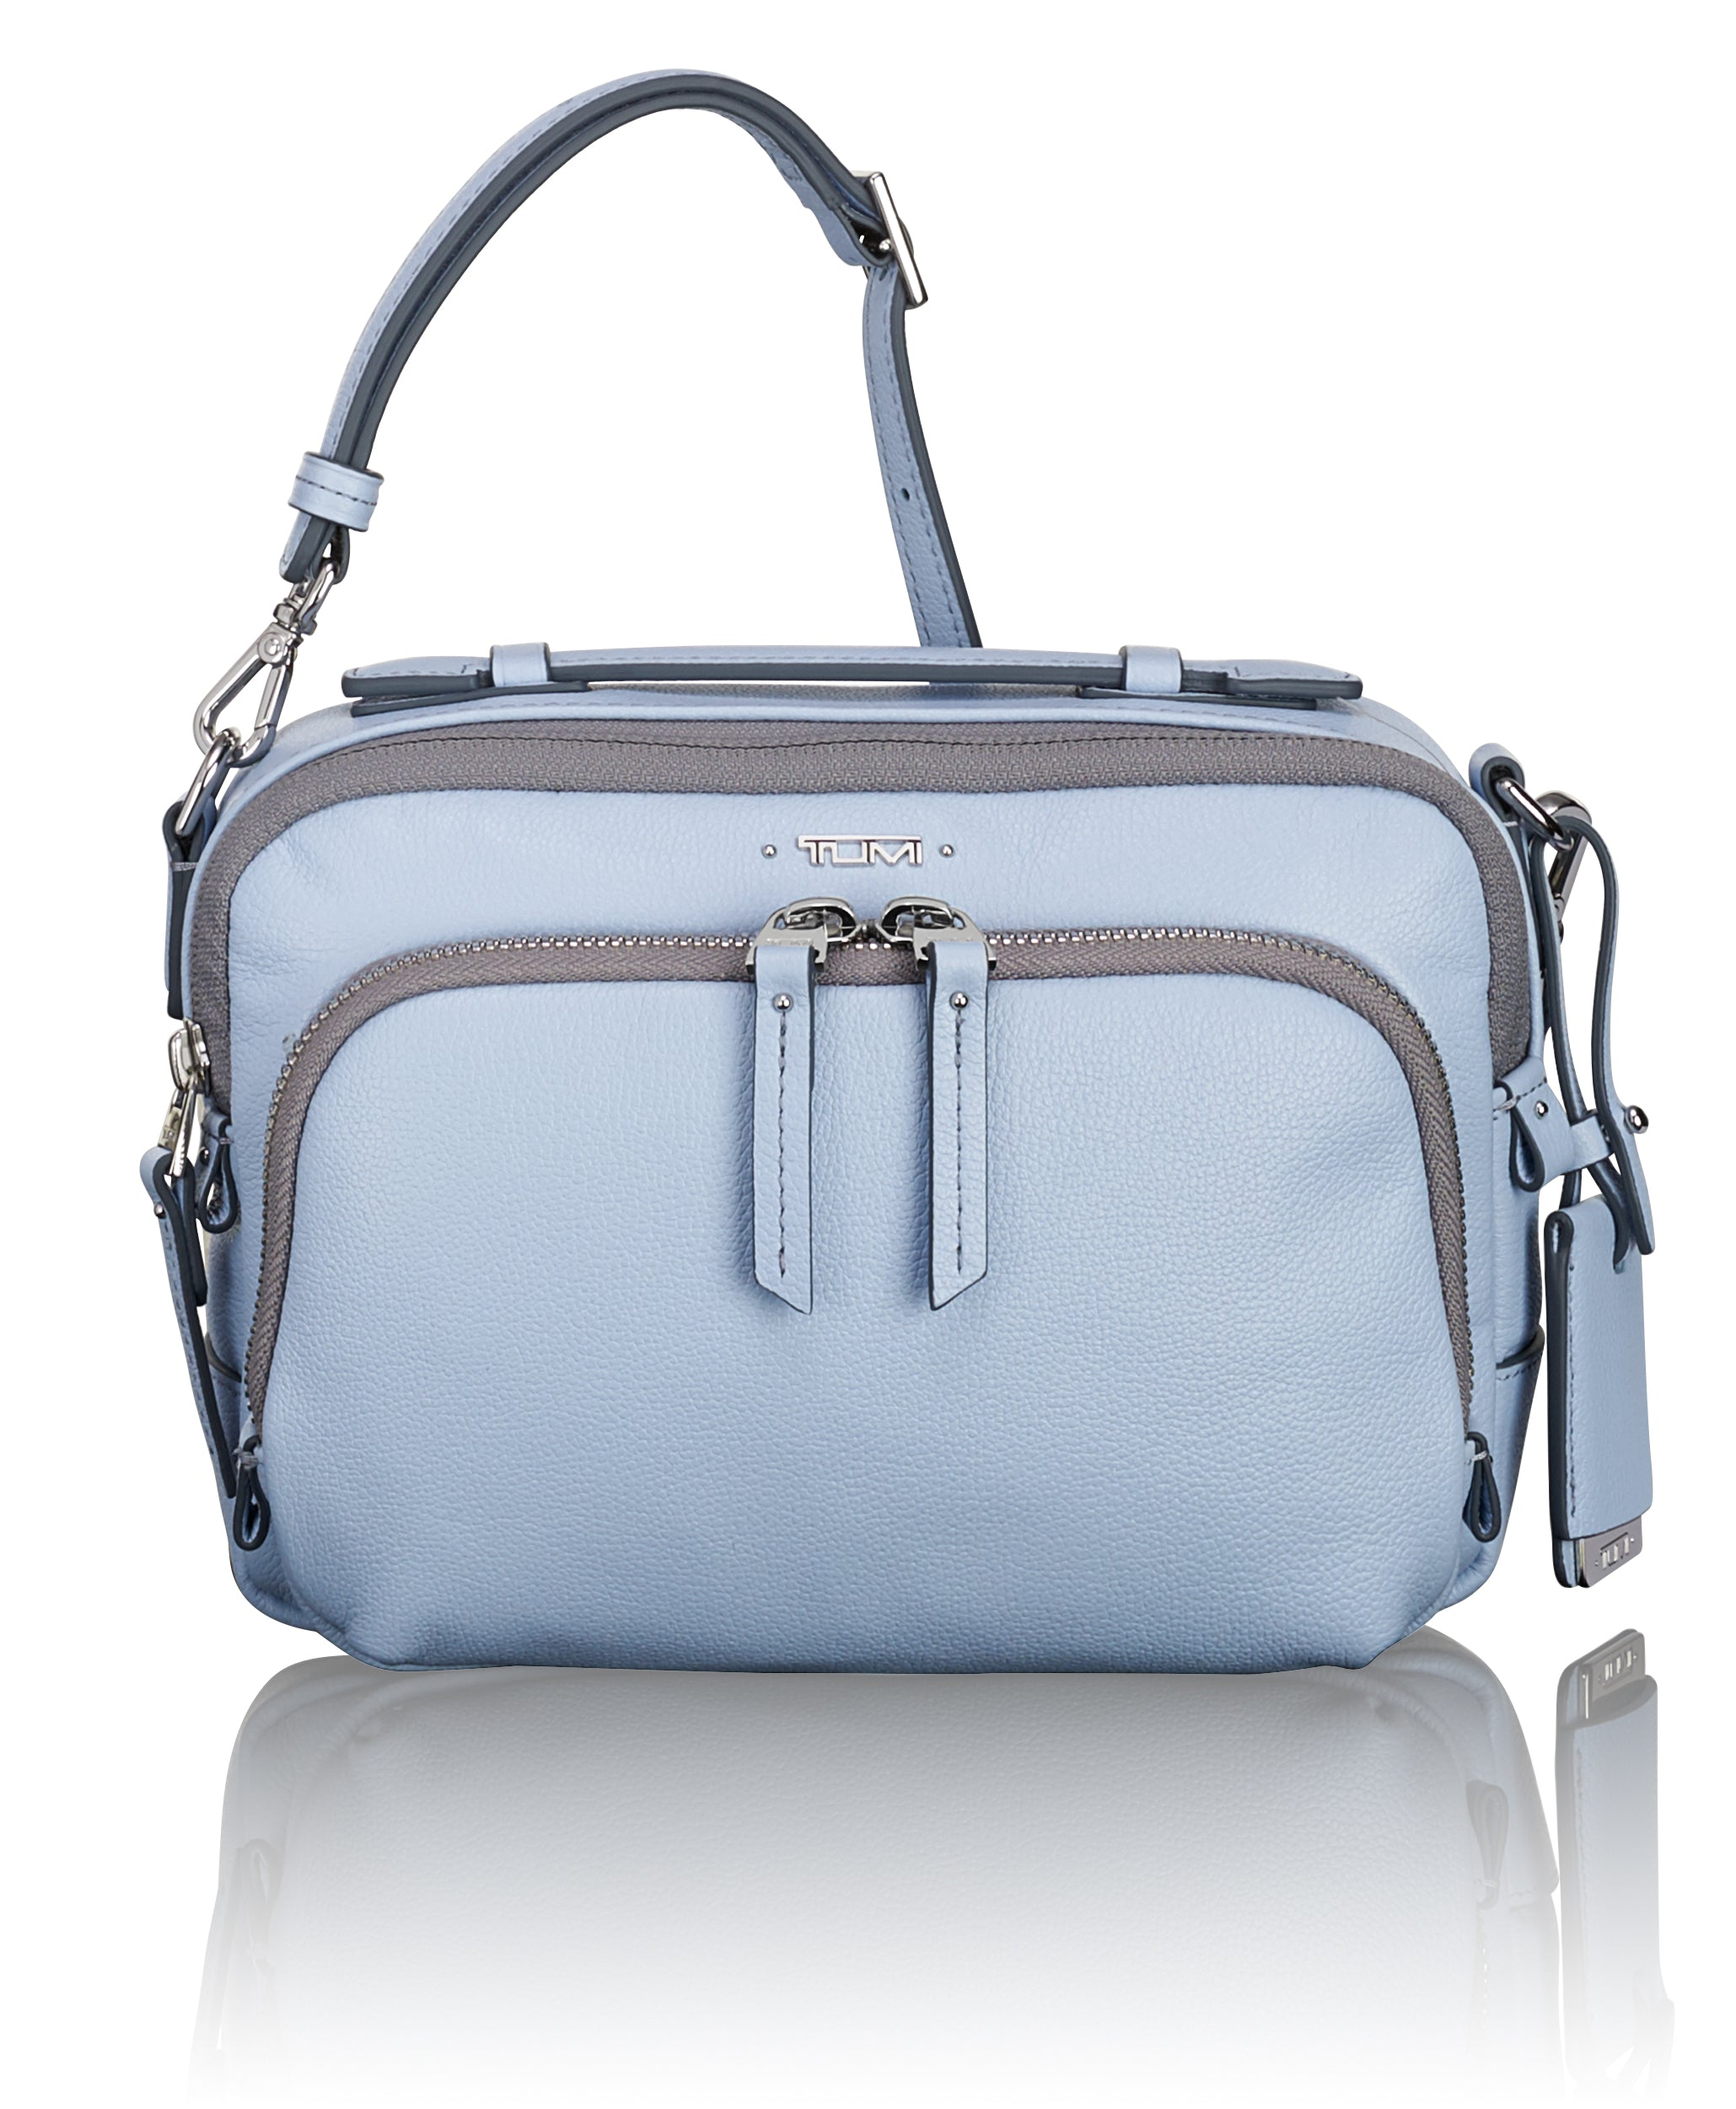 Tumi Voyageur  Luanda Leather Flight Bag - Light Blue | MEGO